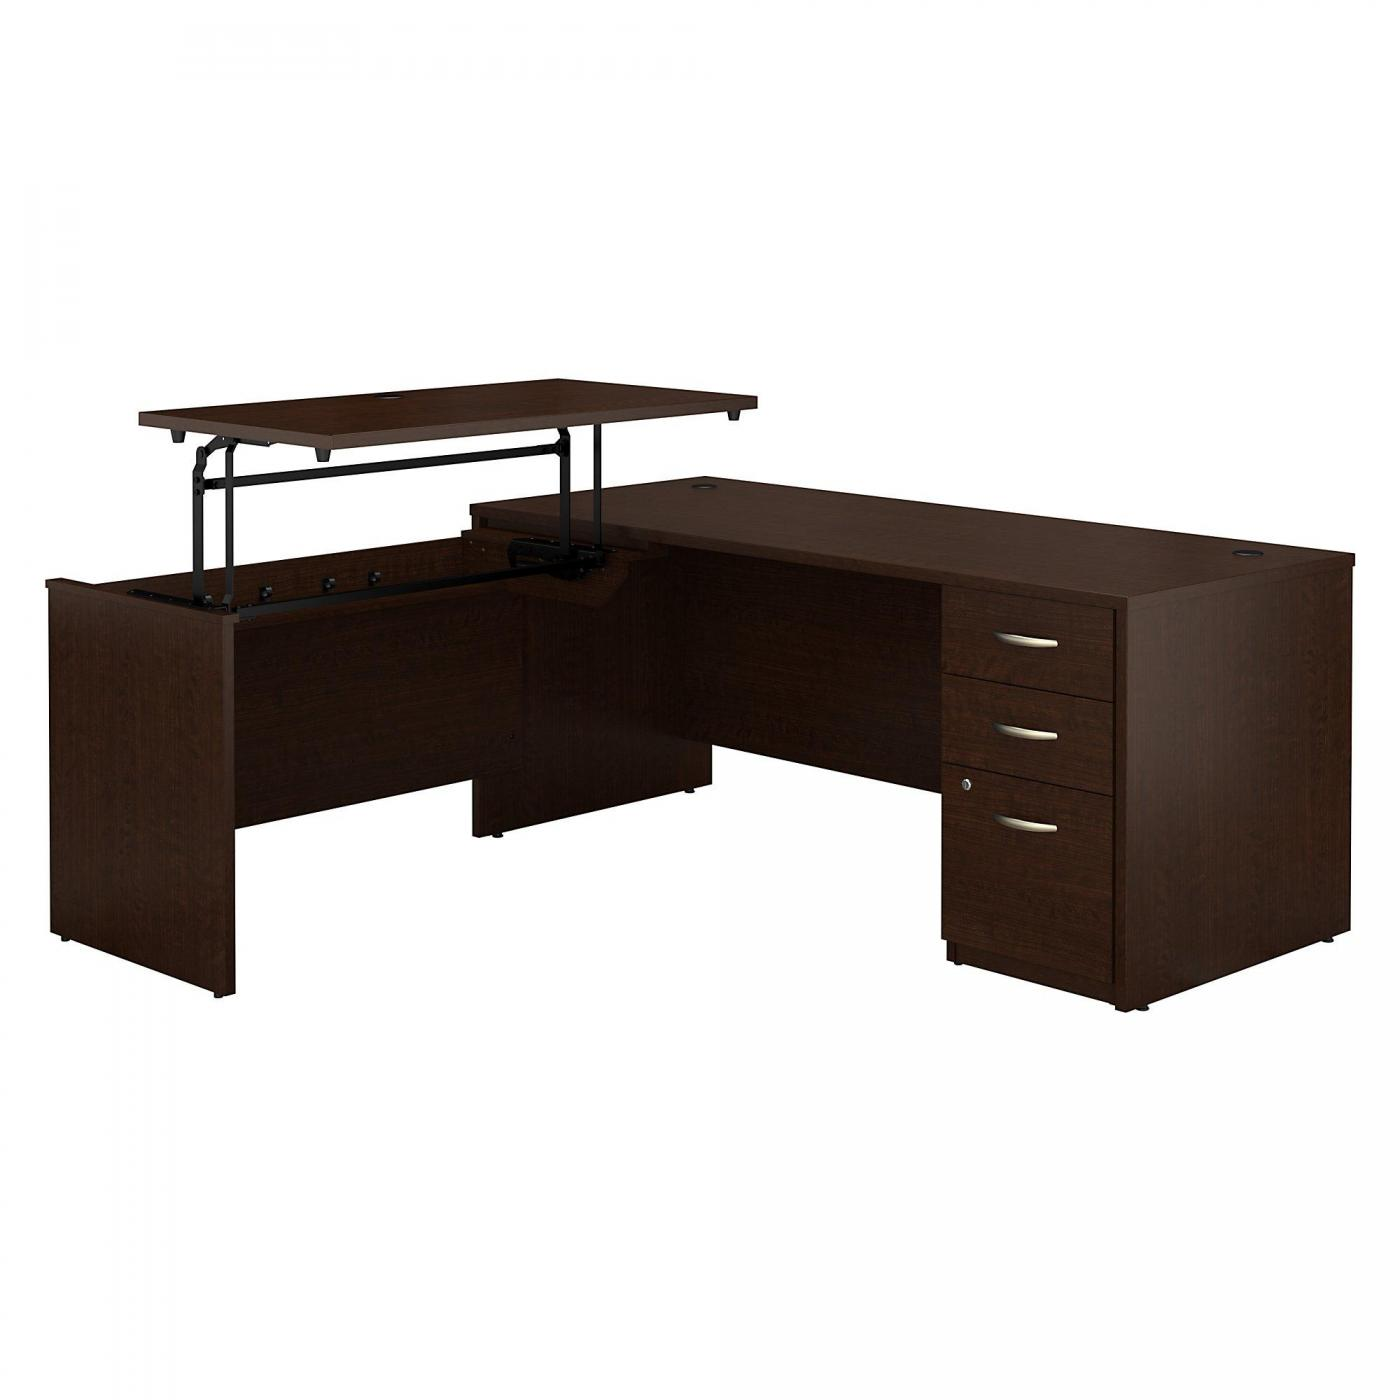 <font color=#c60><b>BUSH BUSINESS FURNITURE SERIES C ELITE 72W X 30D 3 POSITION SIT TO STAND L SHAPED DESK WITH 3 DRAWER FILE CABINET. FREE SHIPPING</font></b>